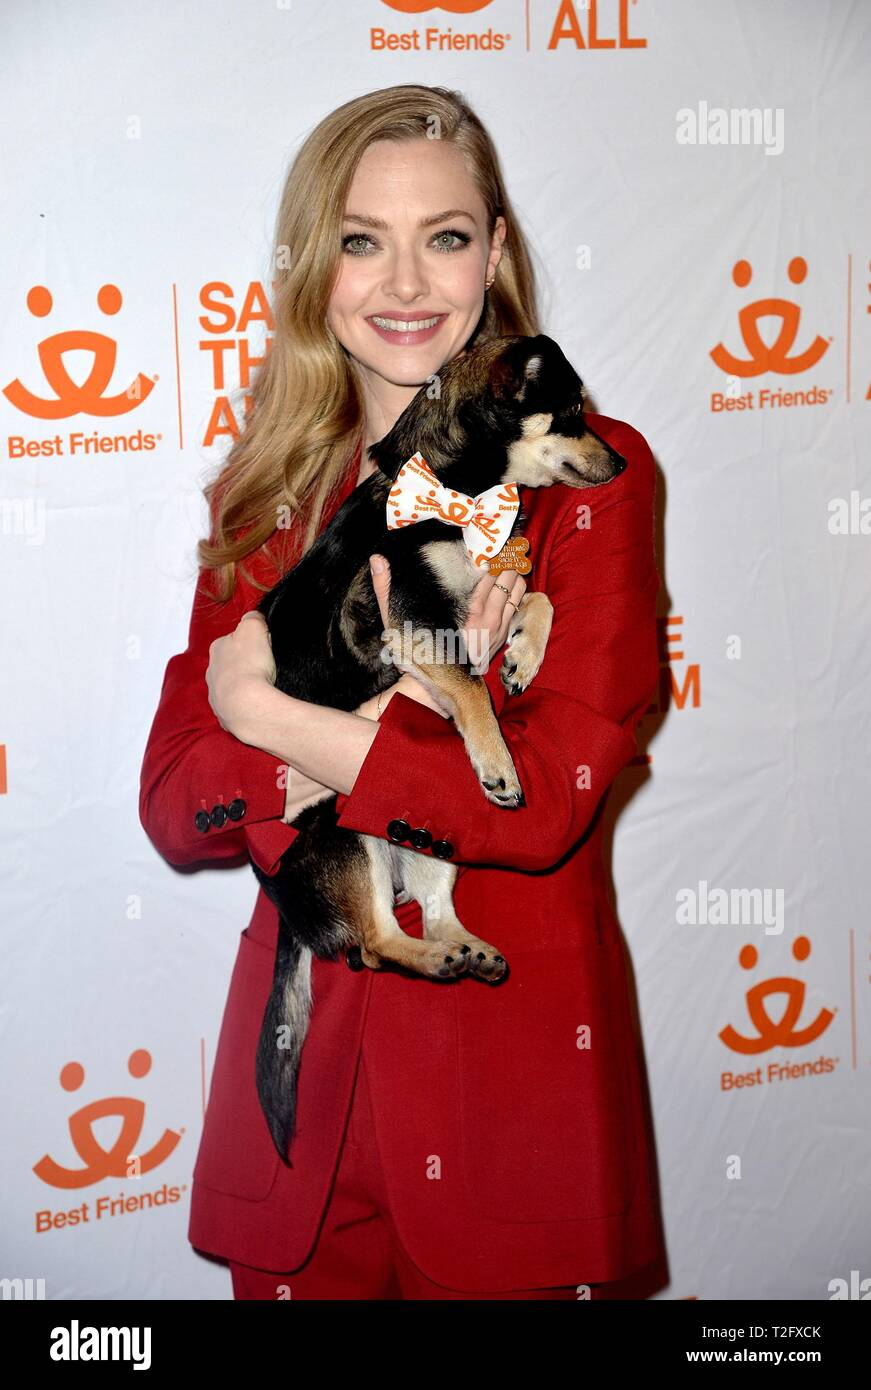 Nueva York, NY, EUA. 2 abr, 2019. Amanda Seyfried en la terminal de llegadas para mejores amigos Sociedad Animal cuarto beneficio anual para salvarlas a todas, Guastavino's, Nueva York, NY, 2 de abril de 2019. Crédito: Kristin Callahan/Everett Collection/Alamy Live News Imagen De Stock